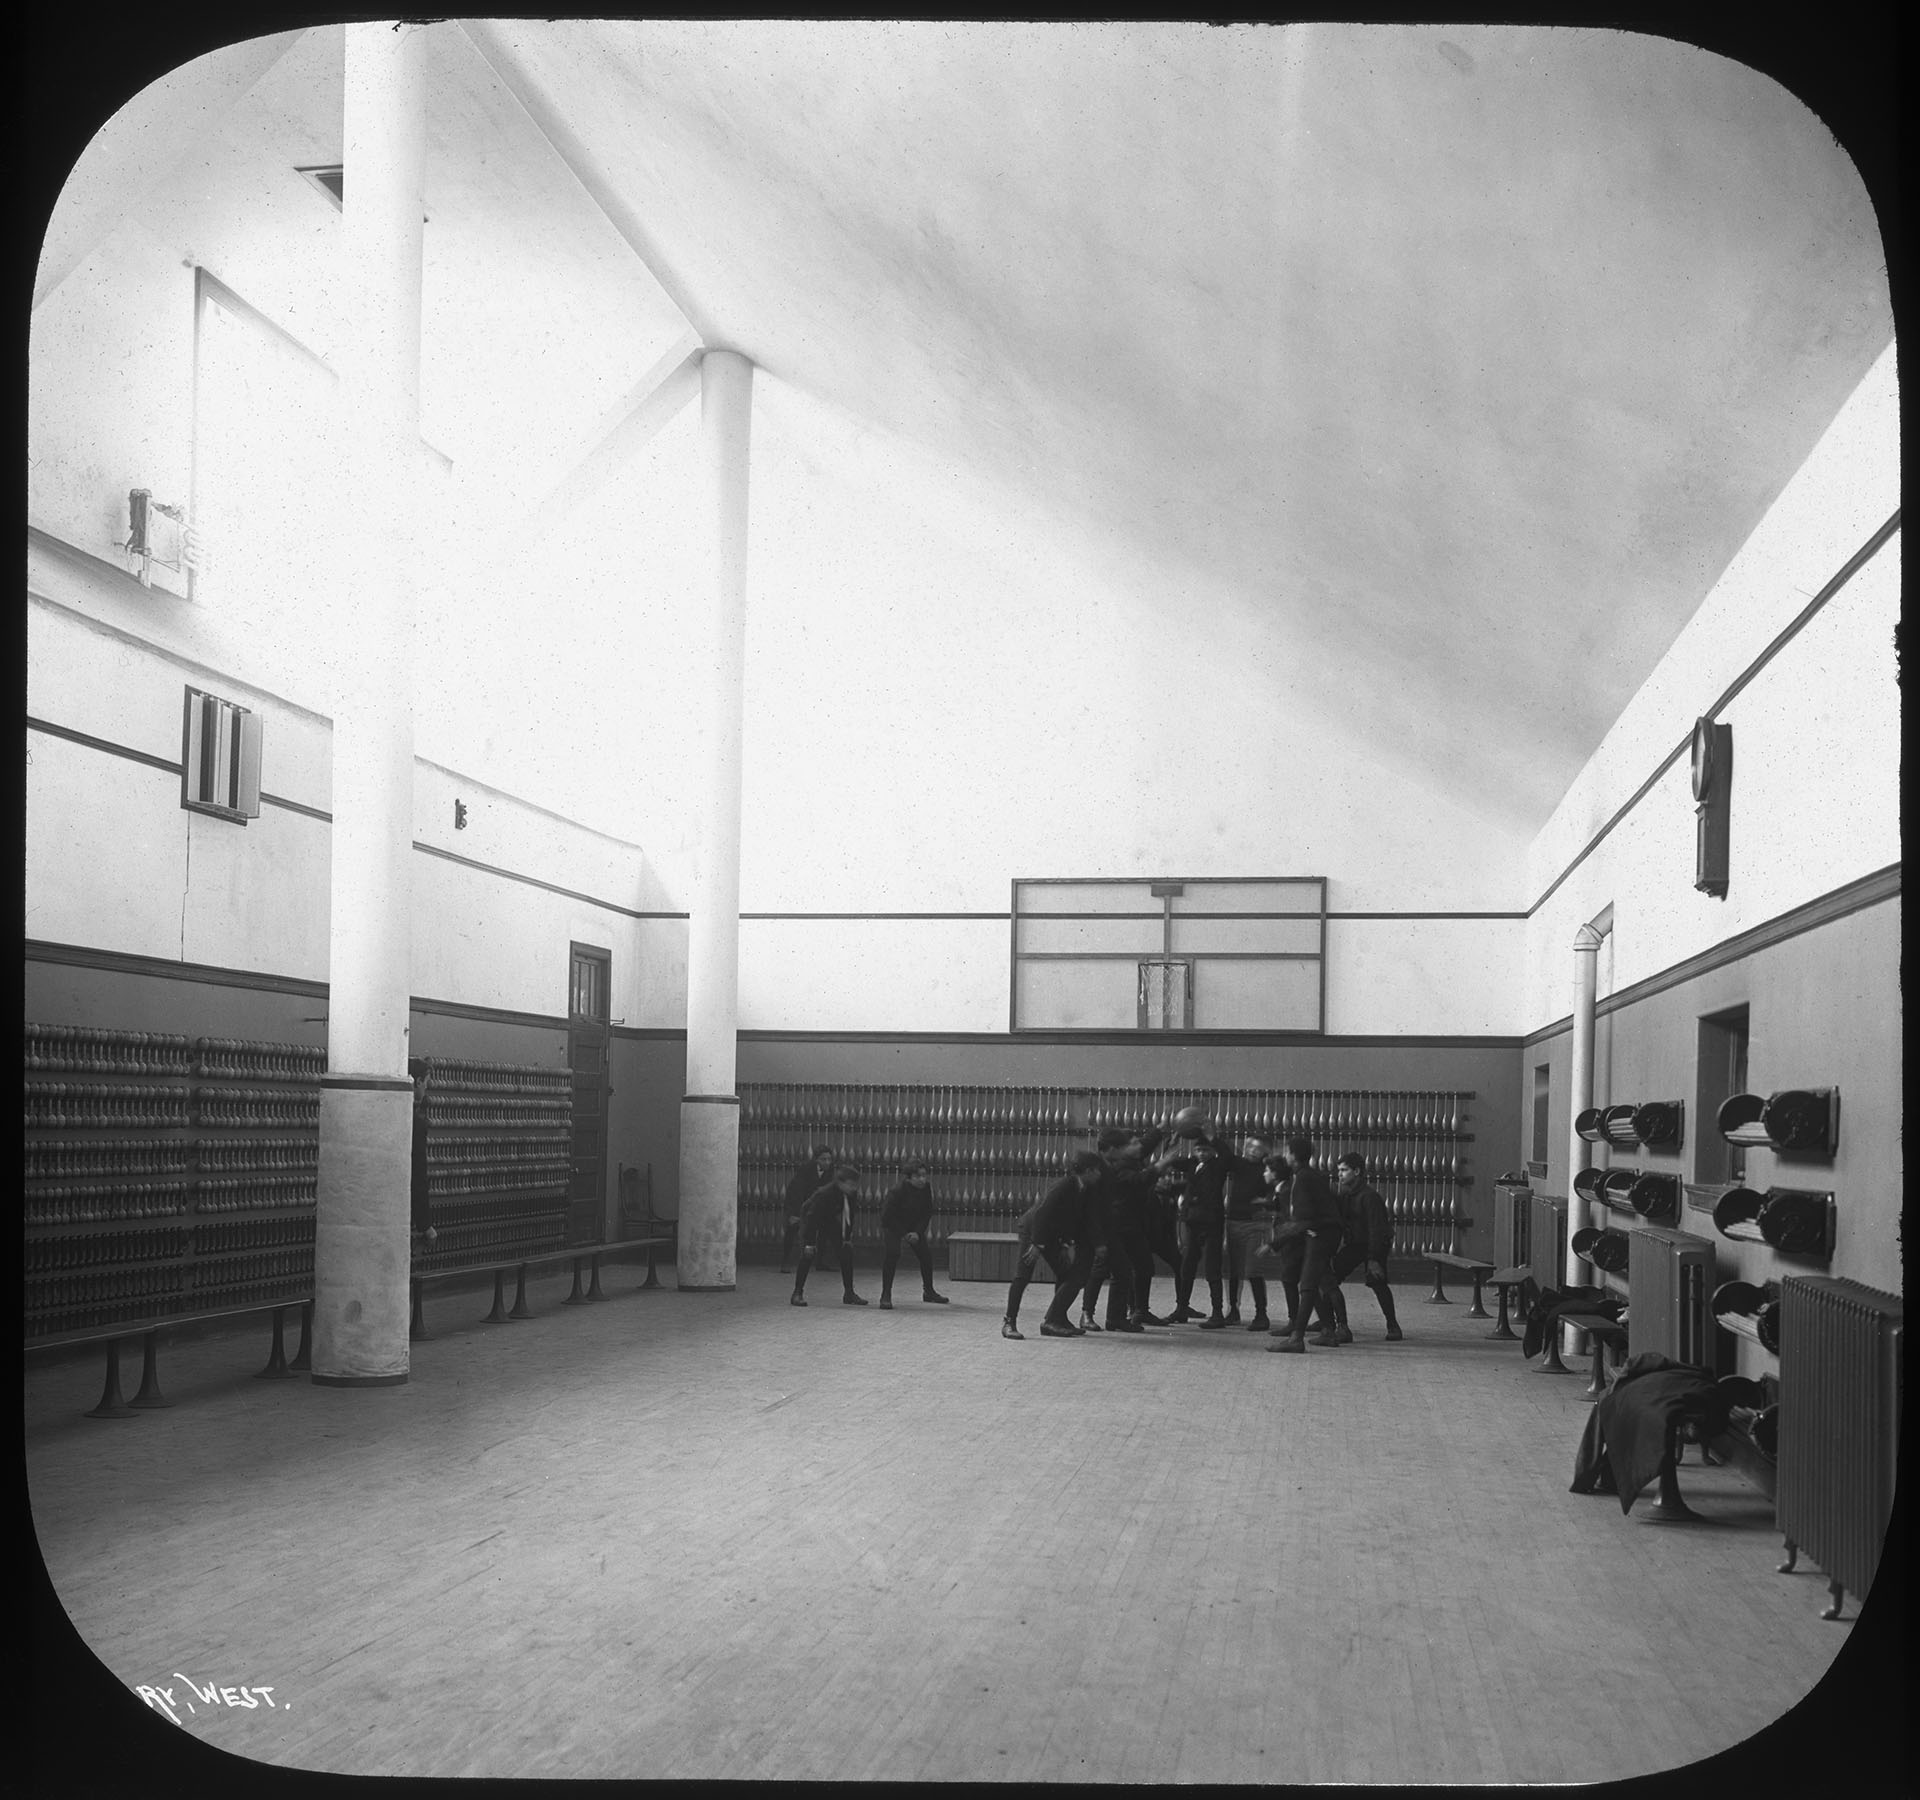 BOE_72020 PS 62 Manhattan, Basketball court, ca. 1908. Note the size of the recently introduced backboard. Board of Education Collection, NYC Municipal Archives.